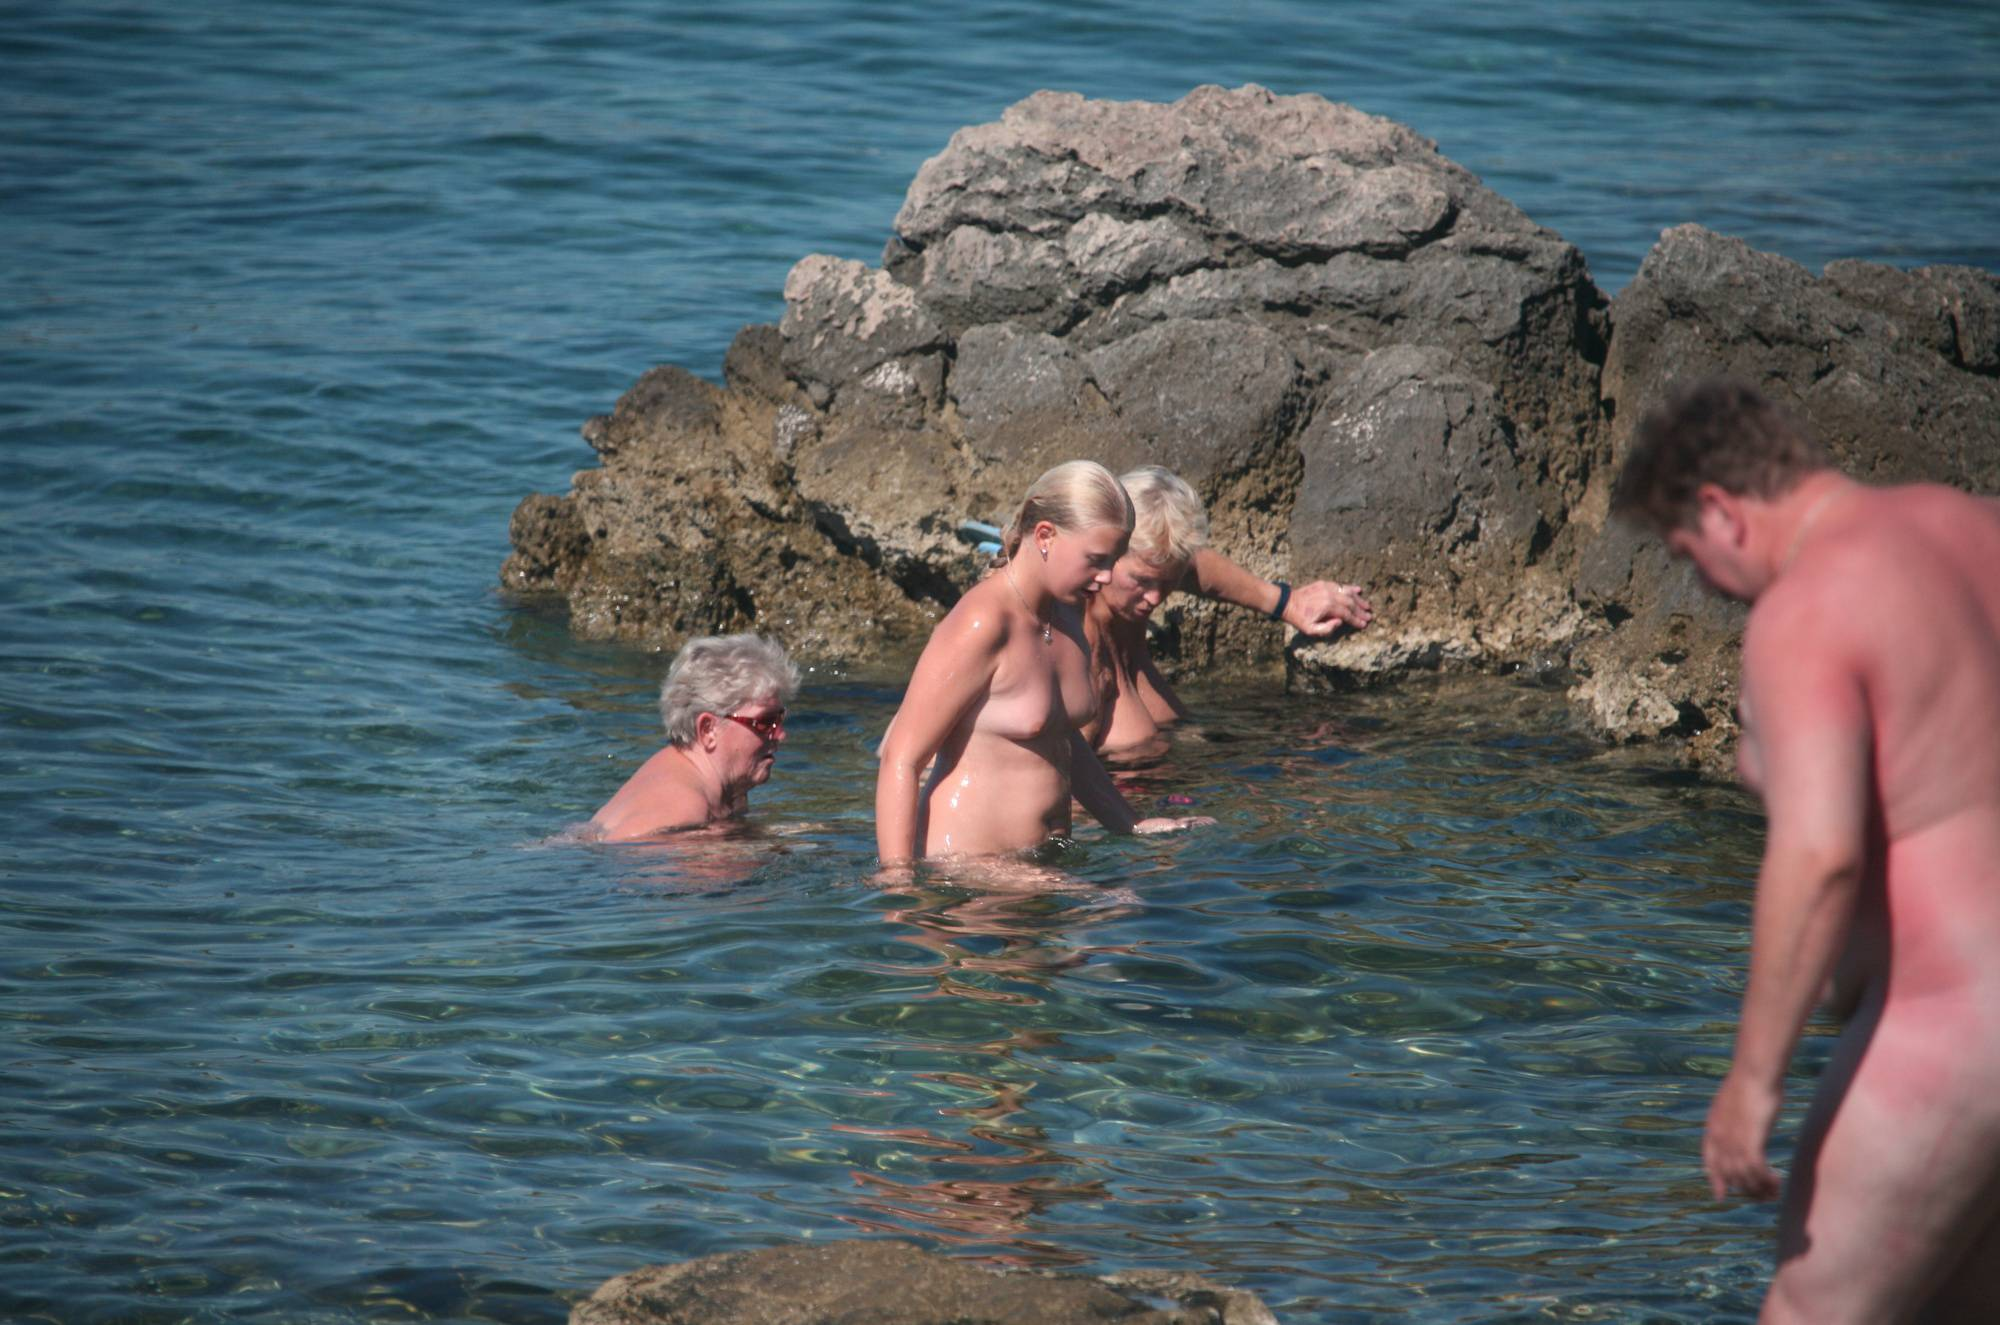 Nudist Pictures Crete One-Braided Nudist - 1